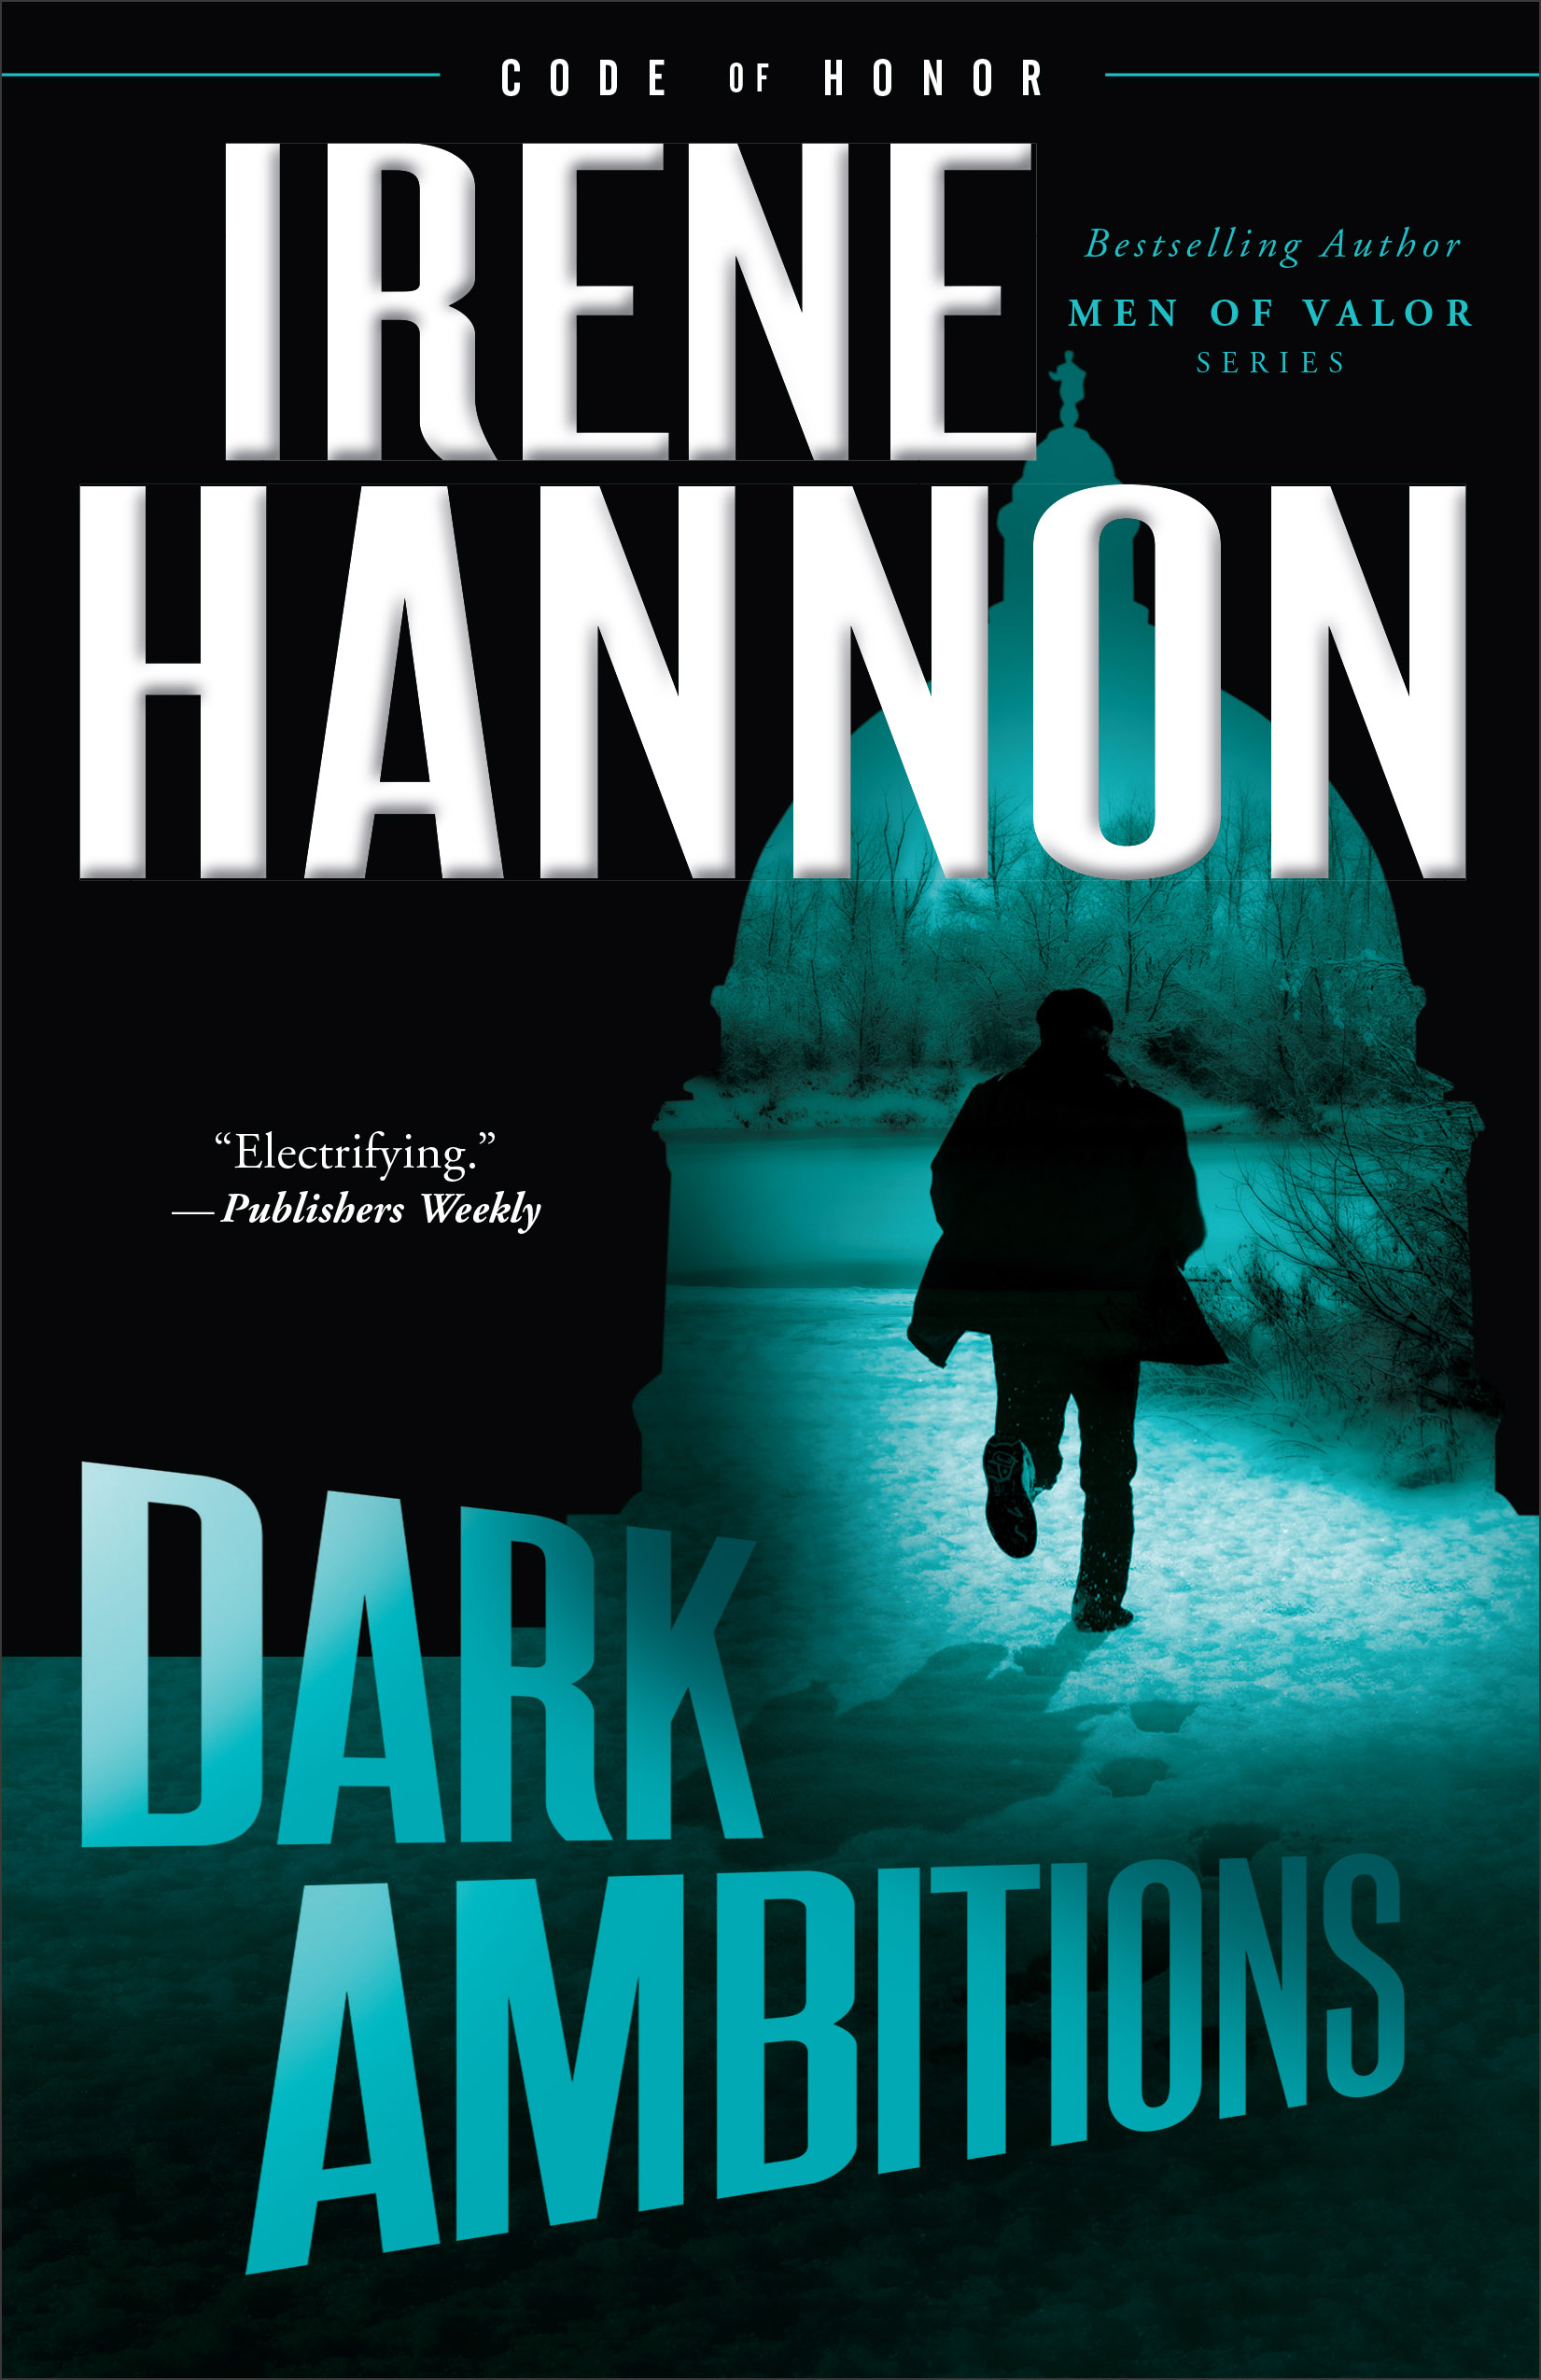 Book review of Dark Ambitions by Irene Hannon (Revell) by papertapepins